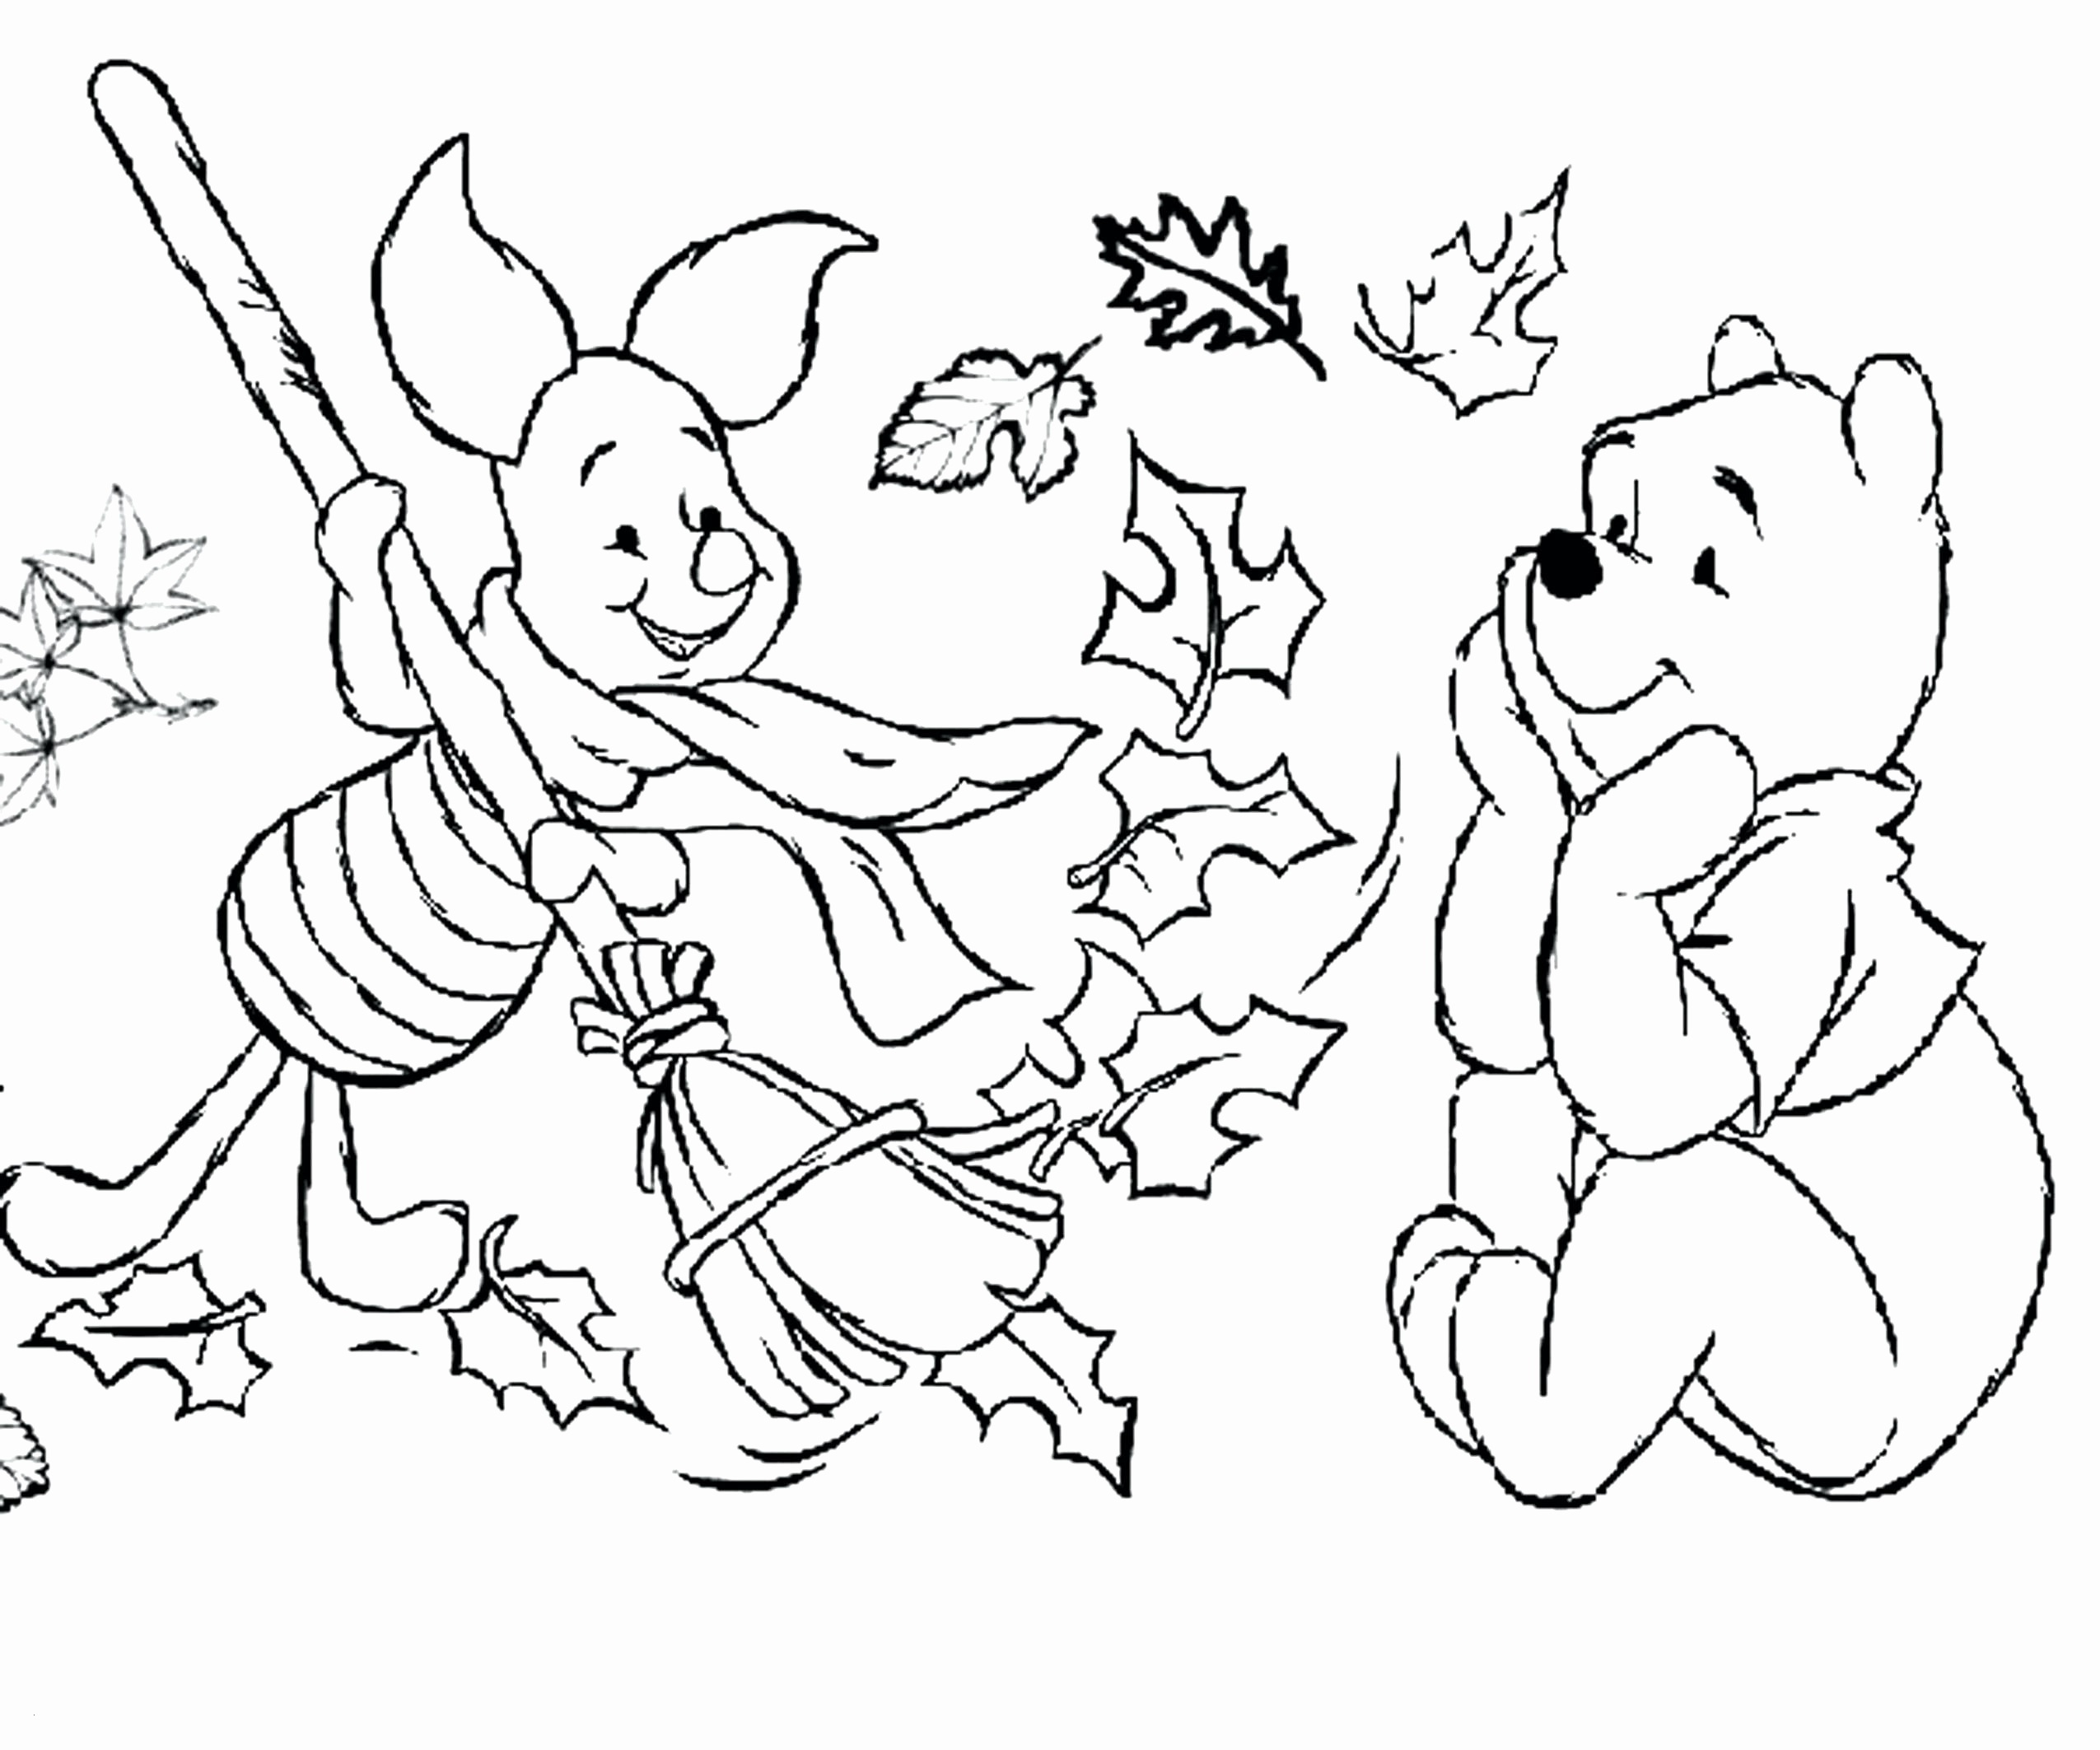 Webkinz Coloring Pages - Maria Kennedy Author at Mikalhameed